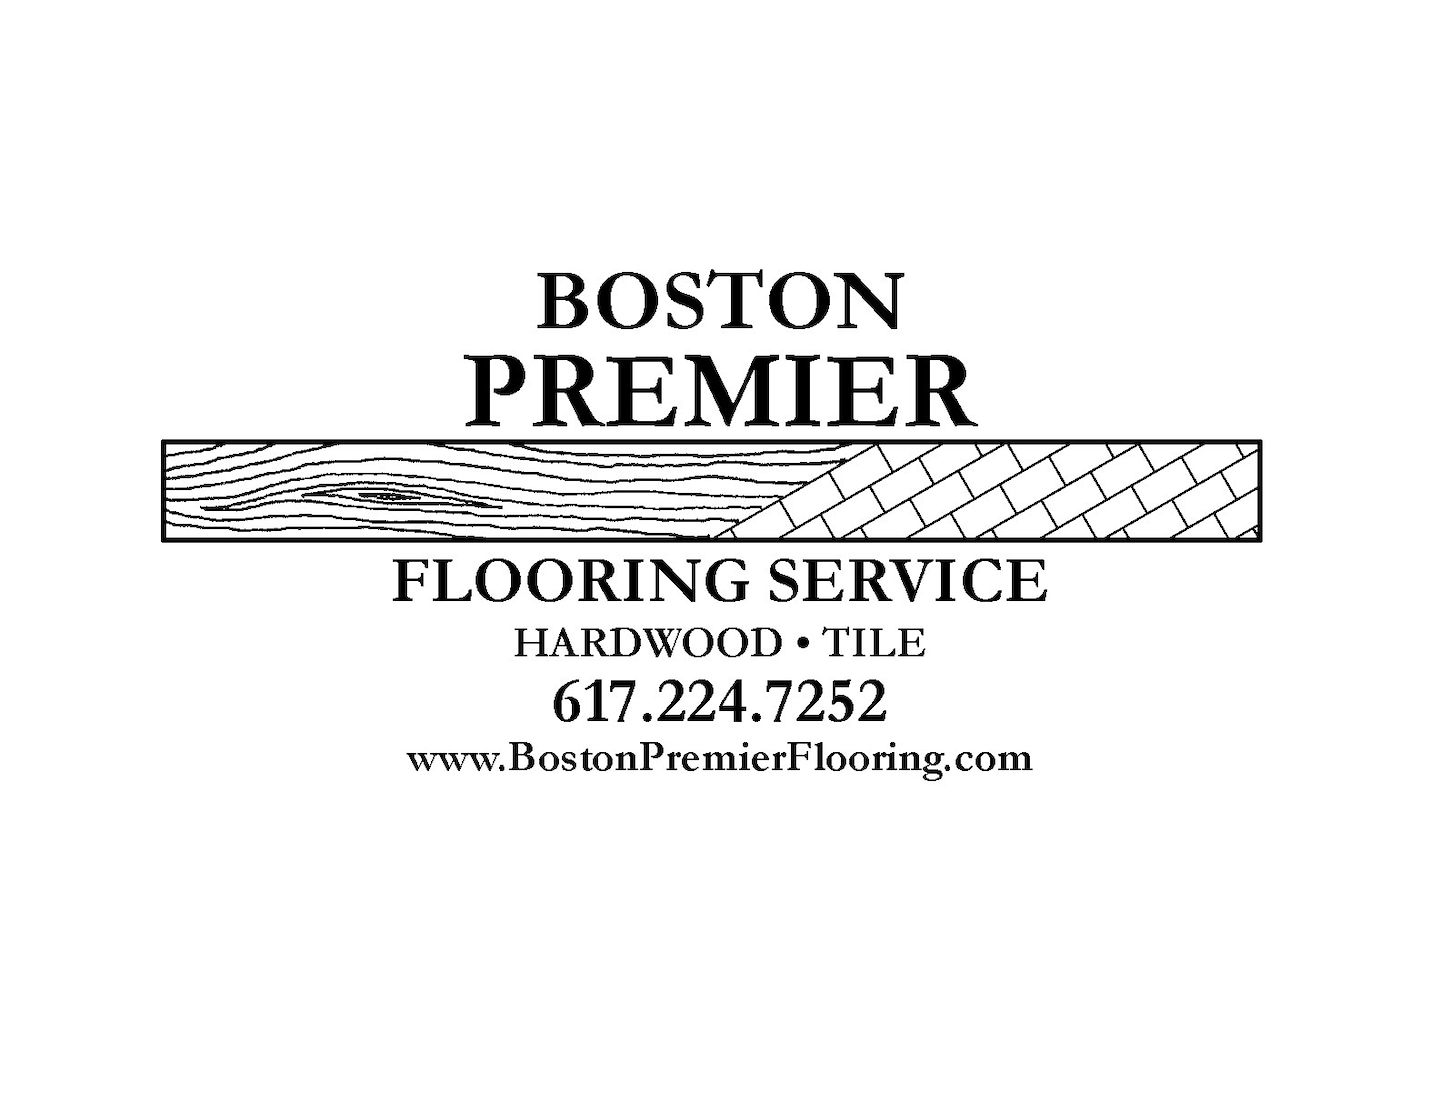 Boston Premier Flooring LLC